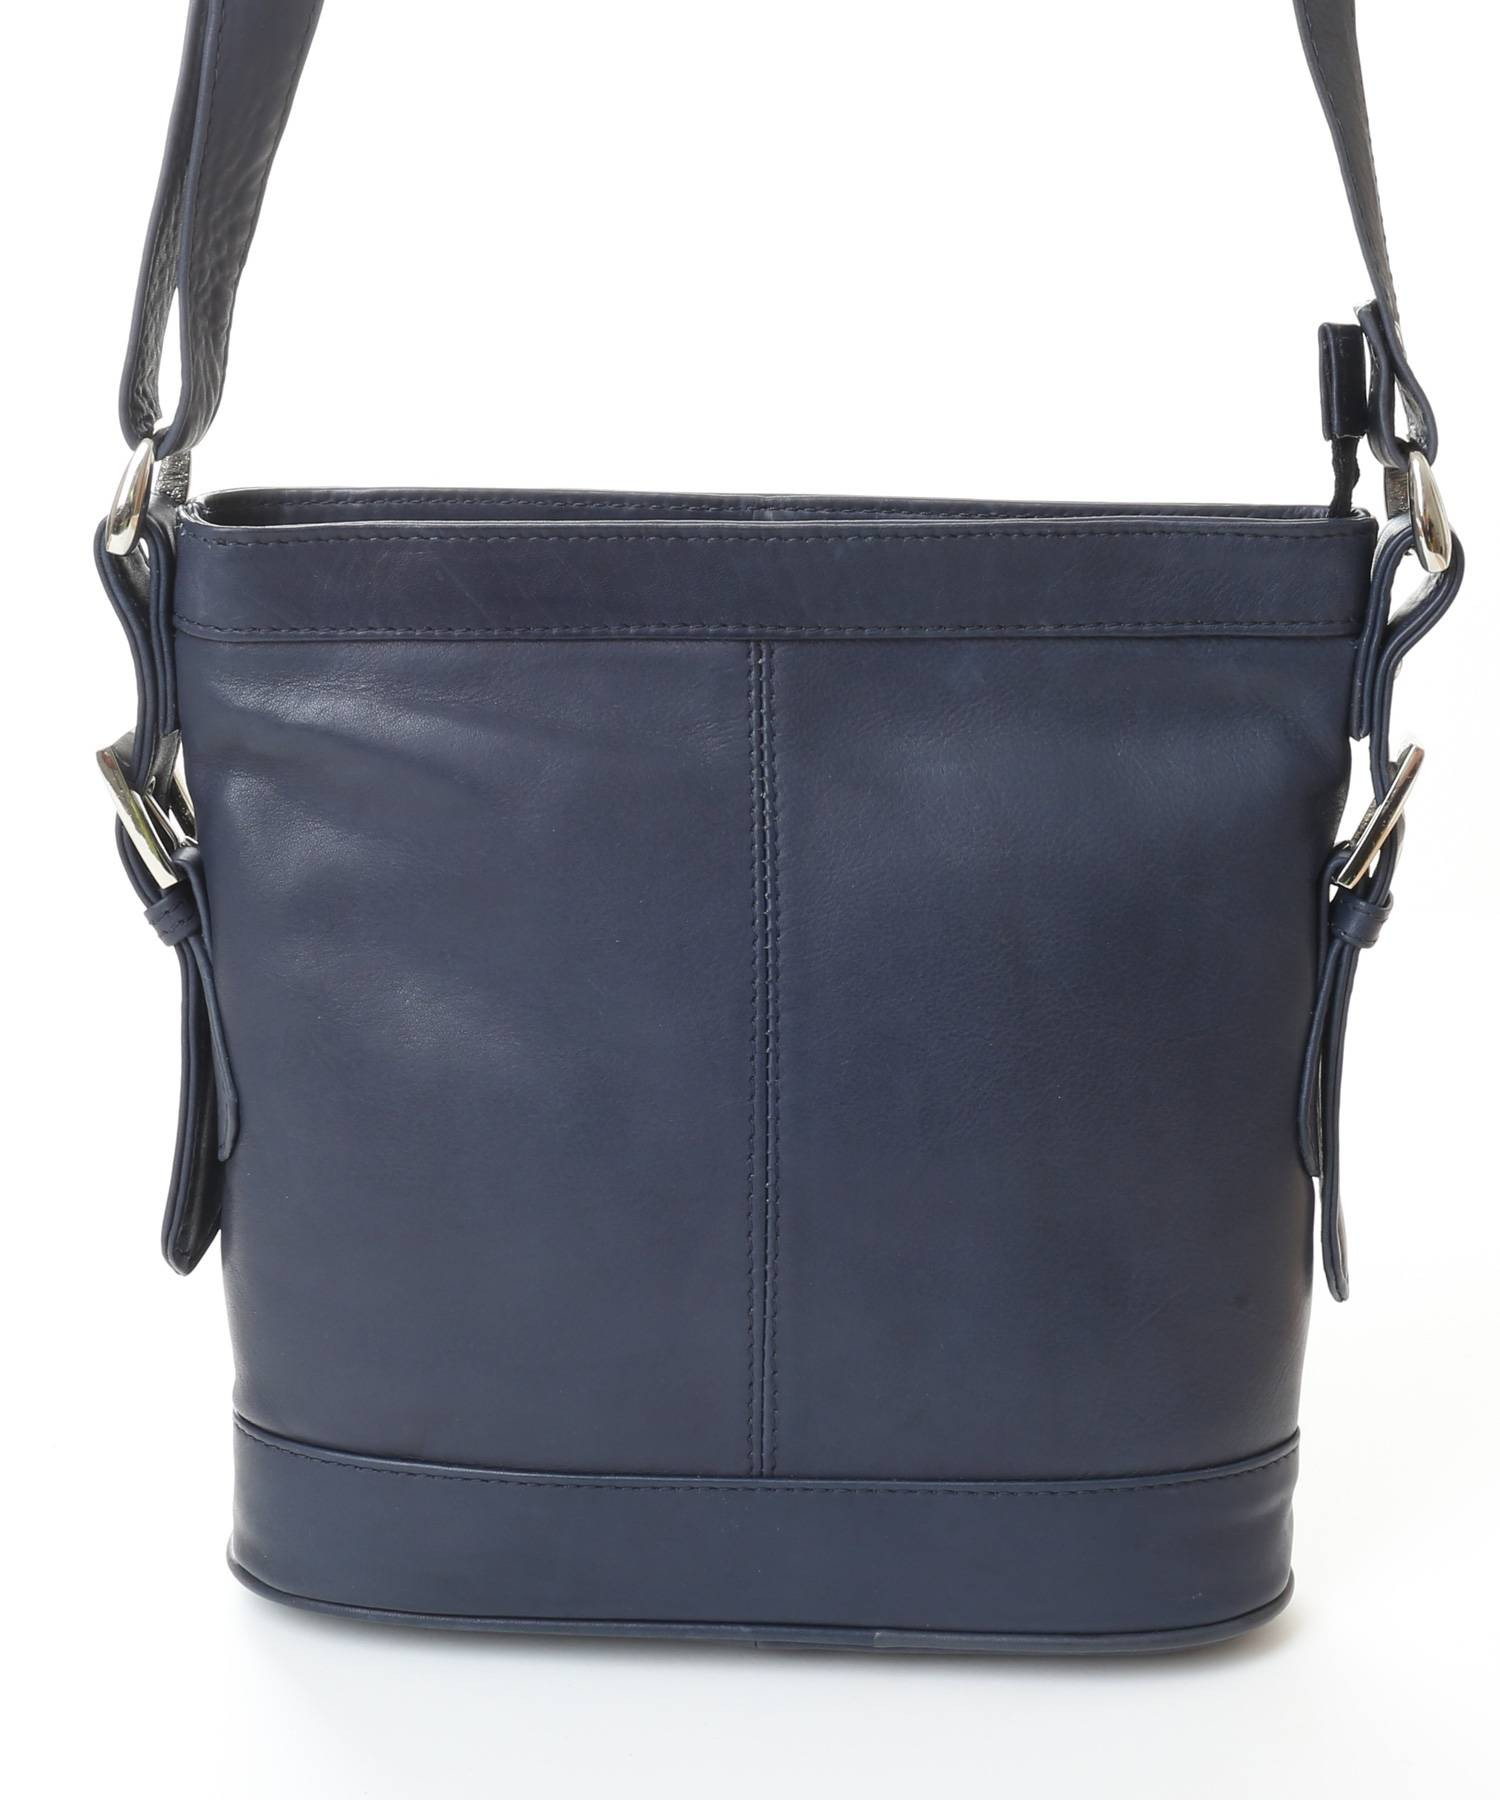 Nova Leather Cross Body Handbag Navy